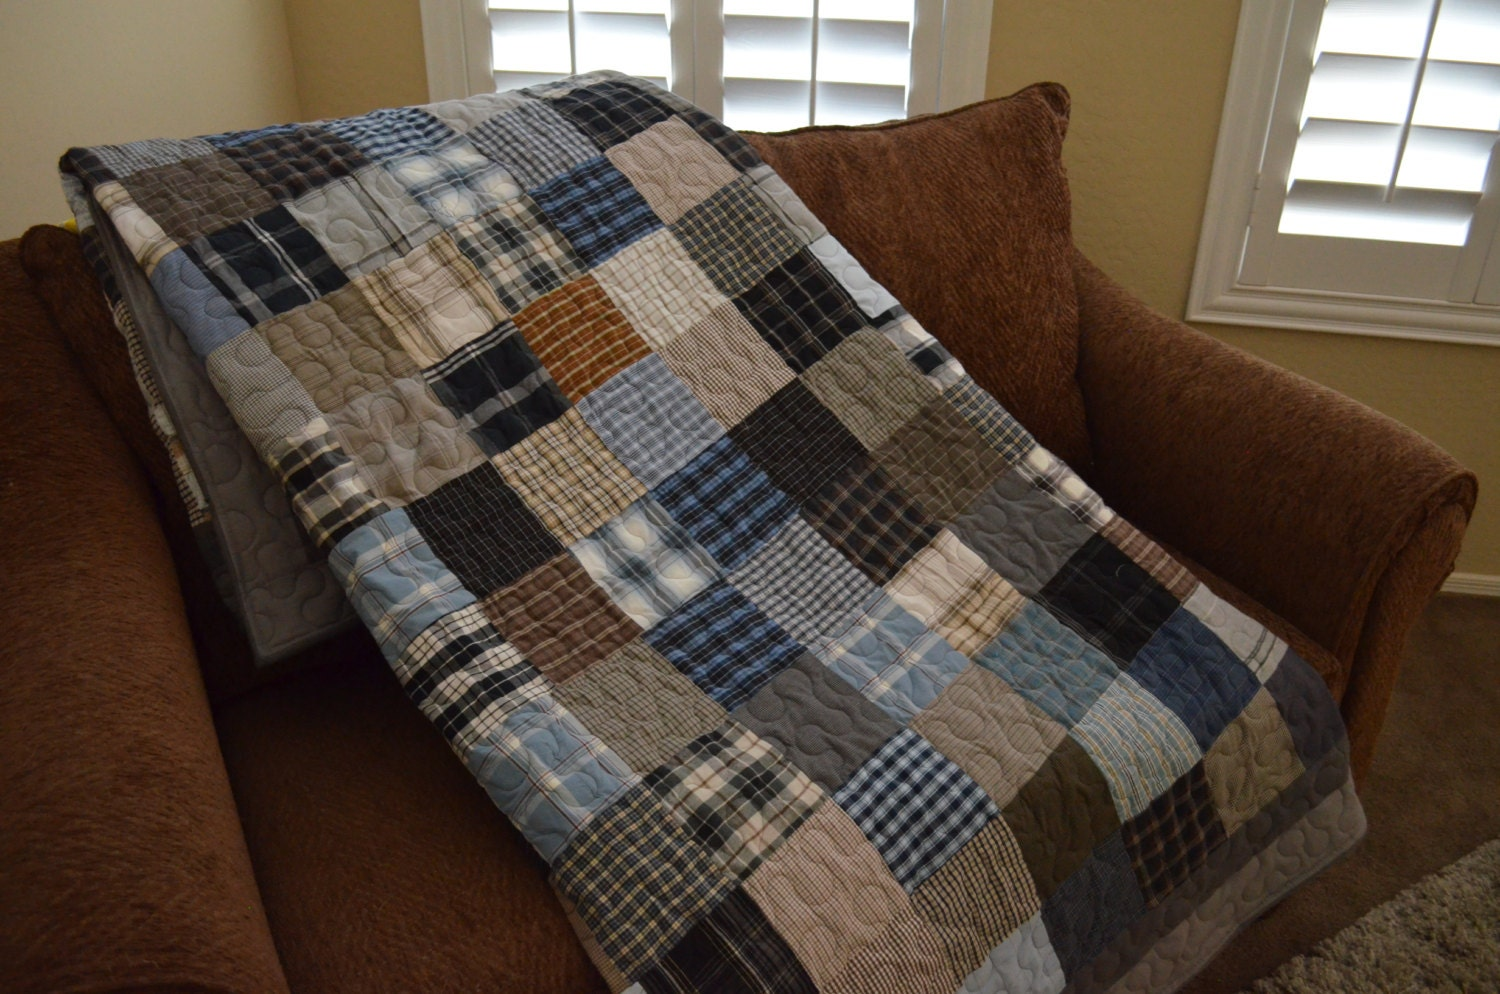 Quilt Patterns From Men S Shirts : Quilt Men s Plaid Dress Shirt Quilt RePurpose ReCycle Gray